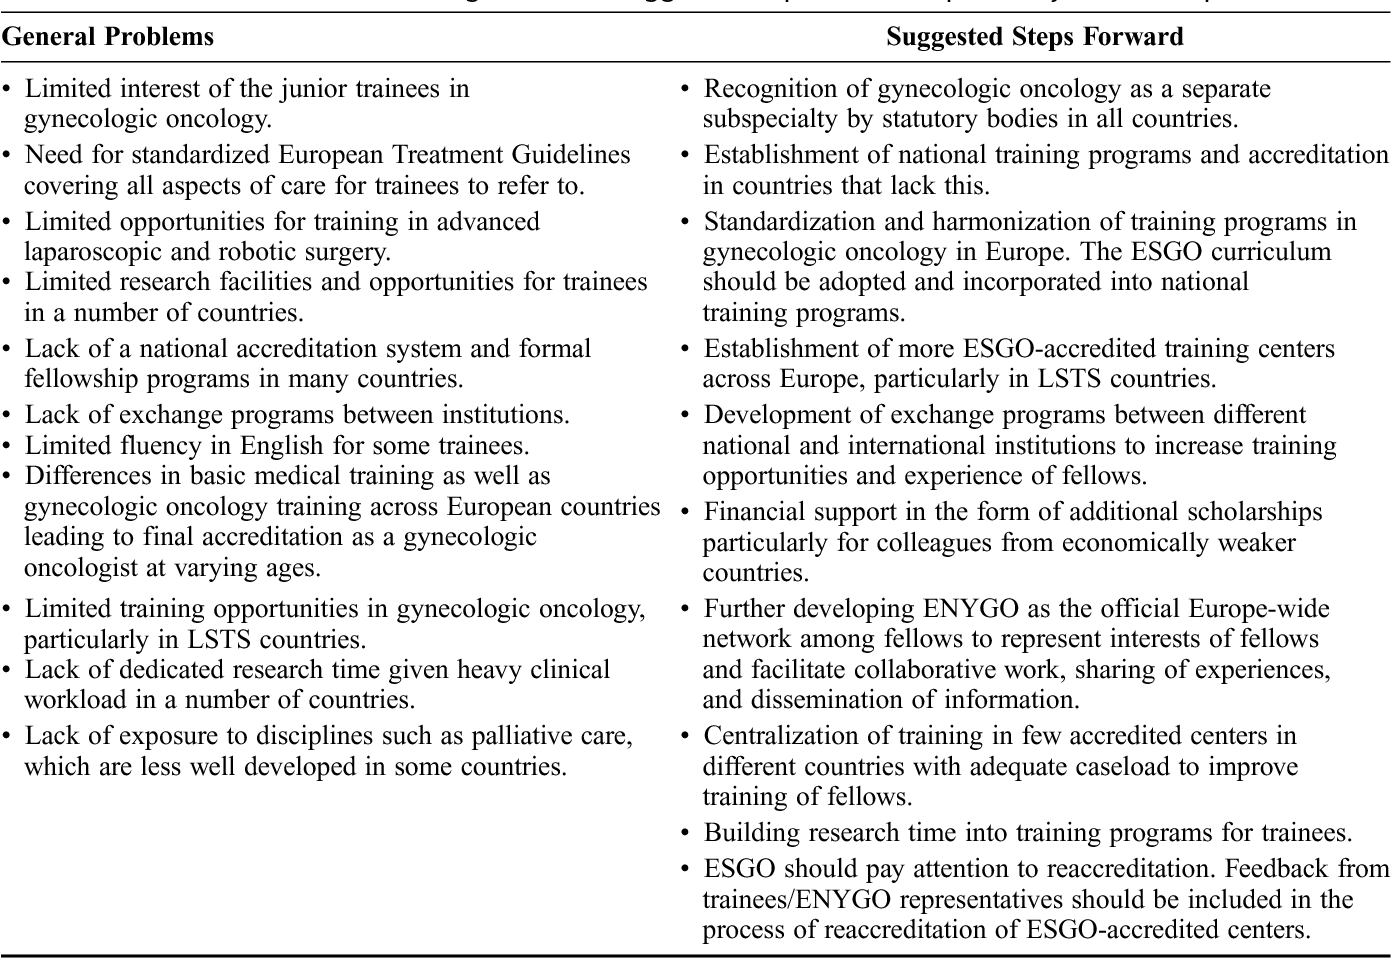 Gynecologic oncology training systems in Europe: a report from the